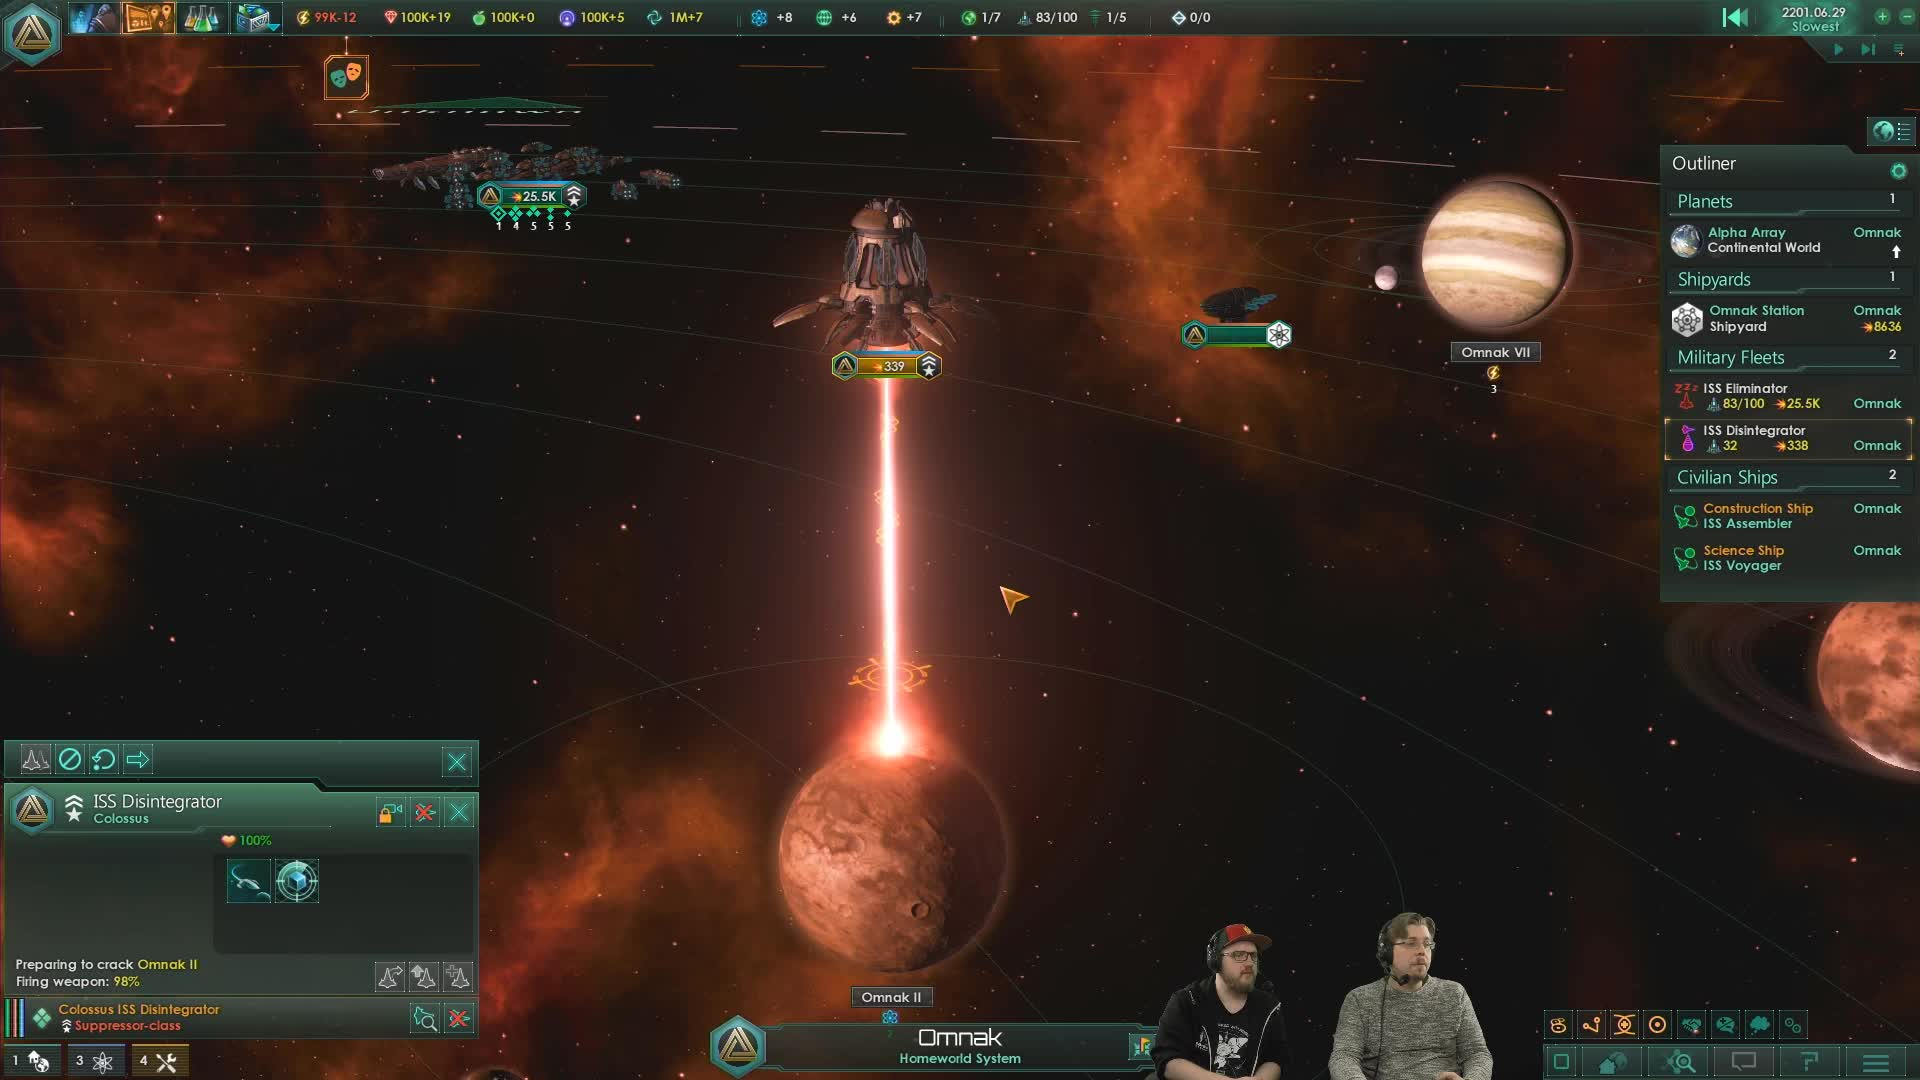 Stellaris Gifs Search | Search & Share on Homdor